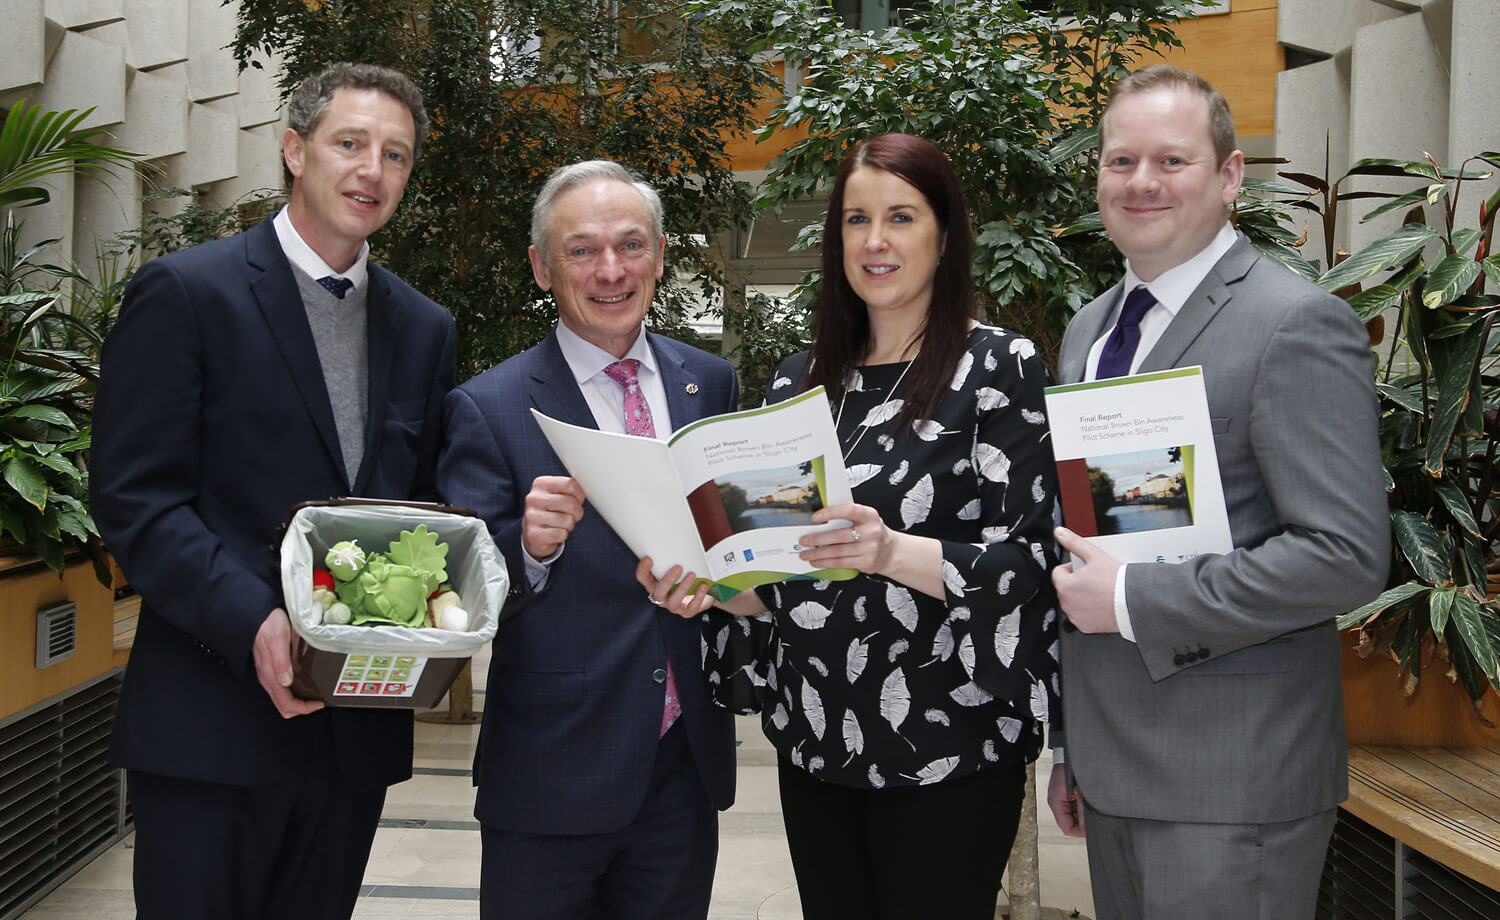 Minister Bruton Launches Report on Pioneering National Brown Bin Initiative